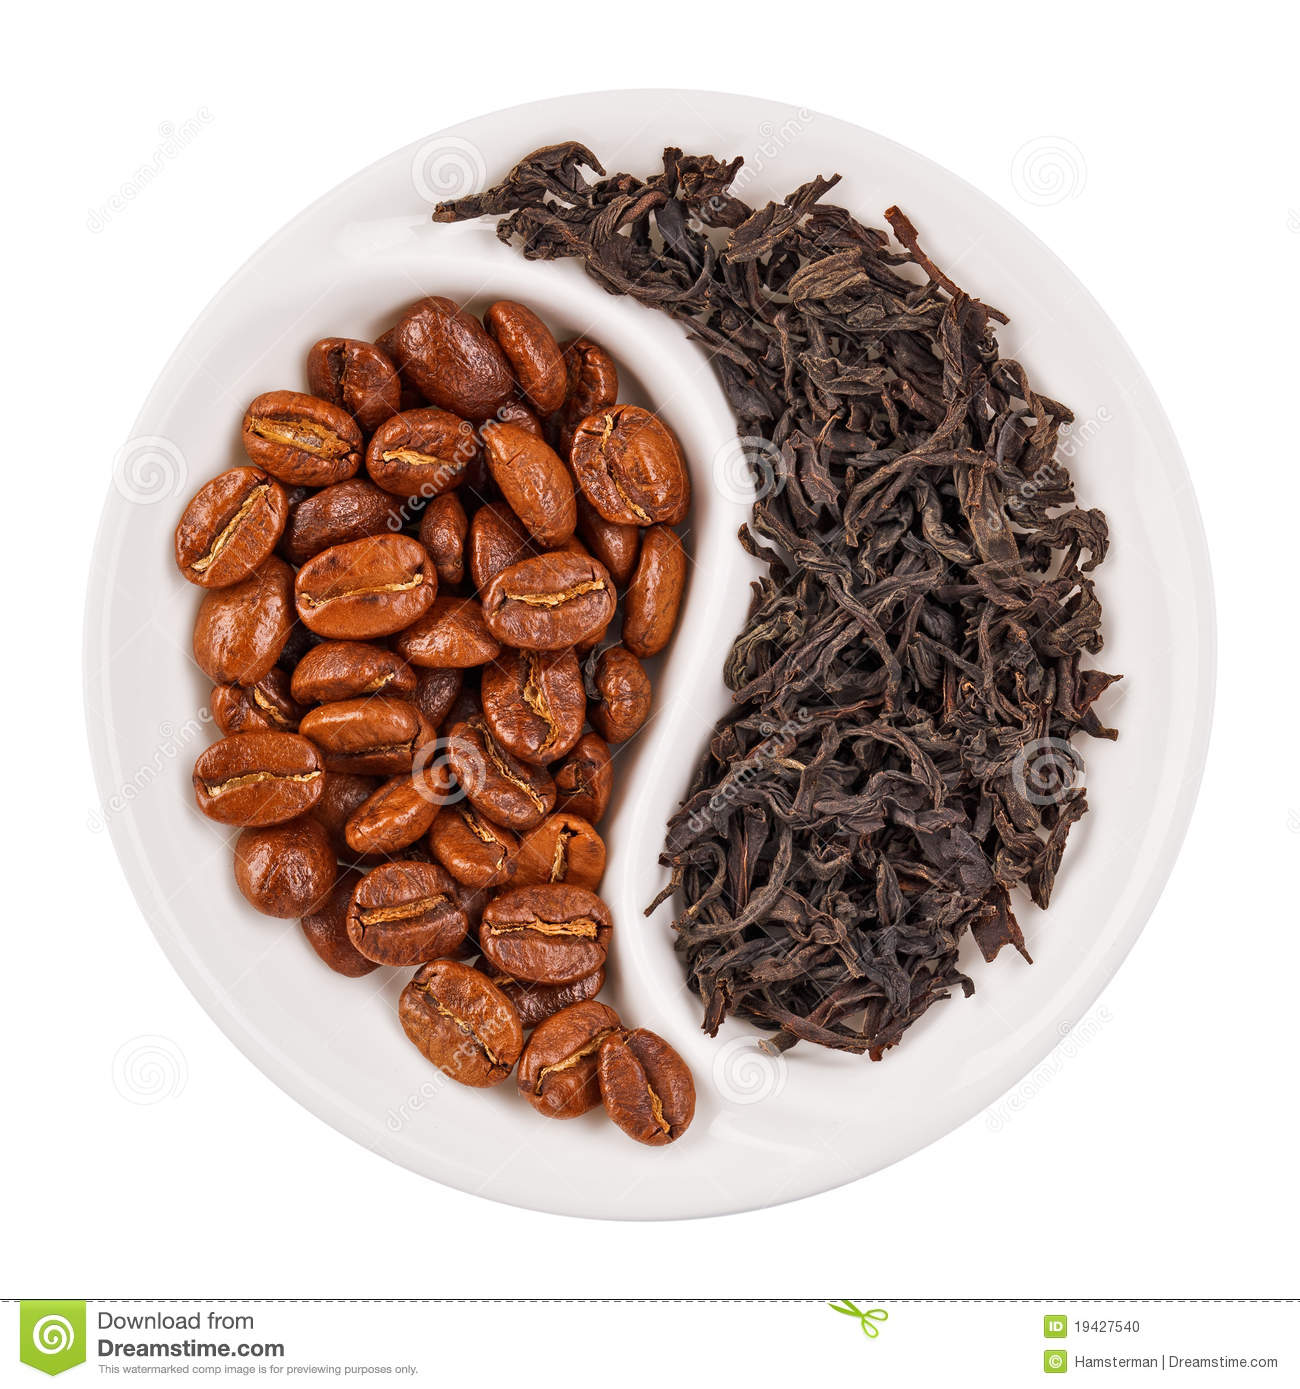 Coffee Bean Black And White Black leaf tea versus coffee